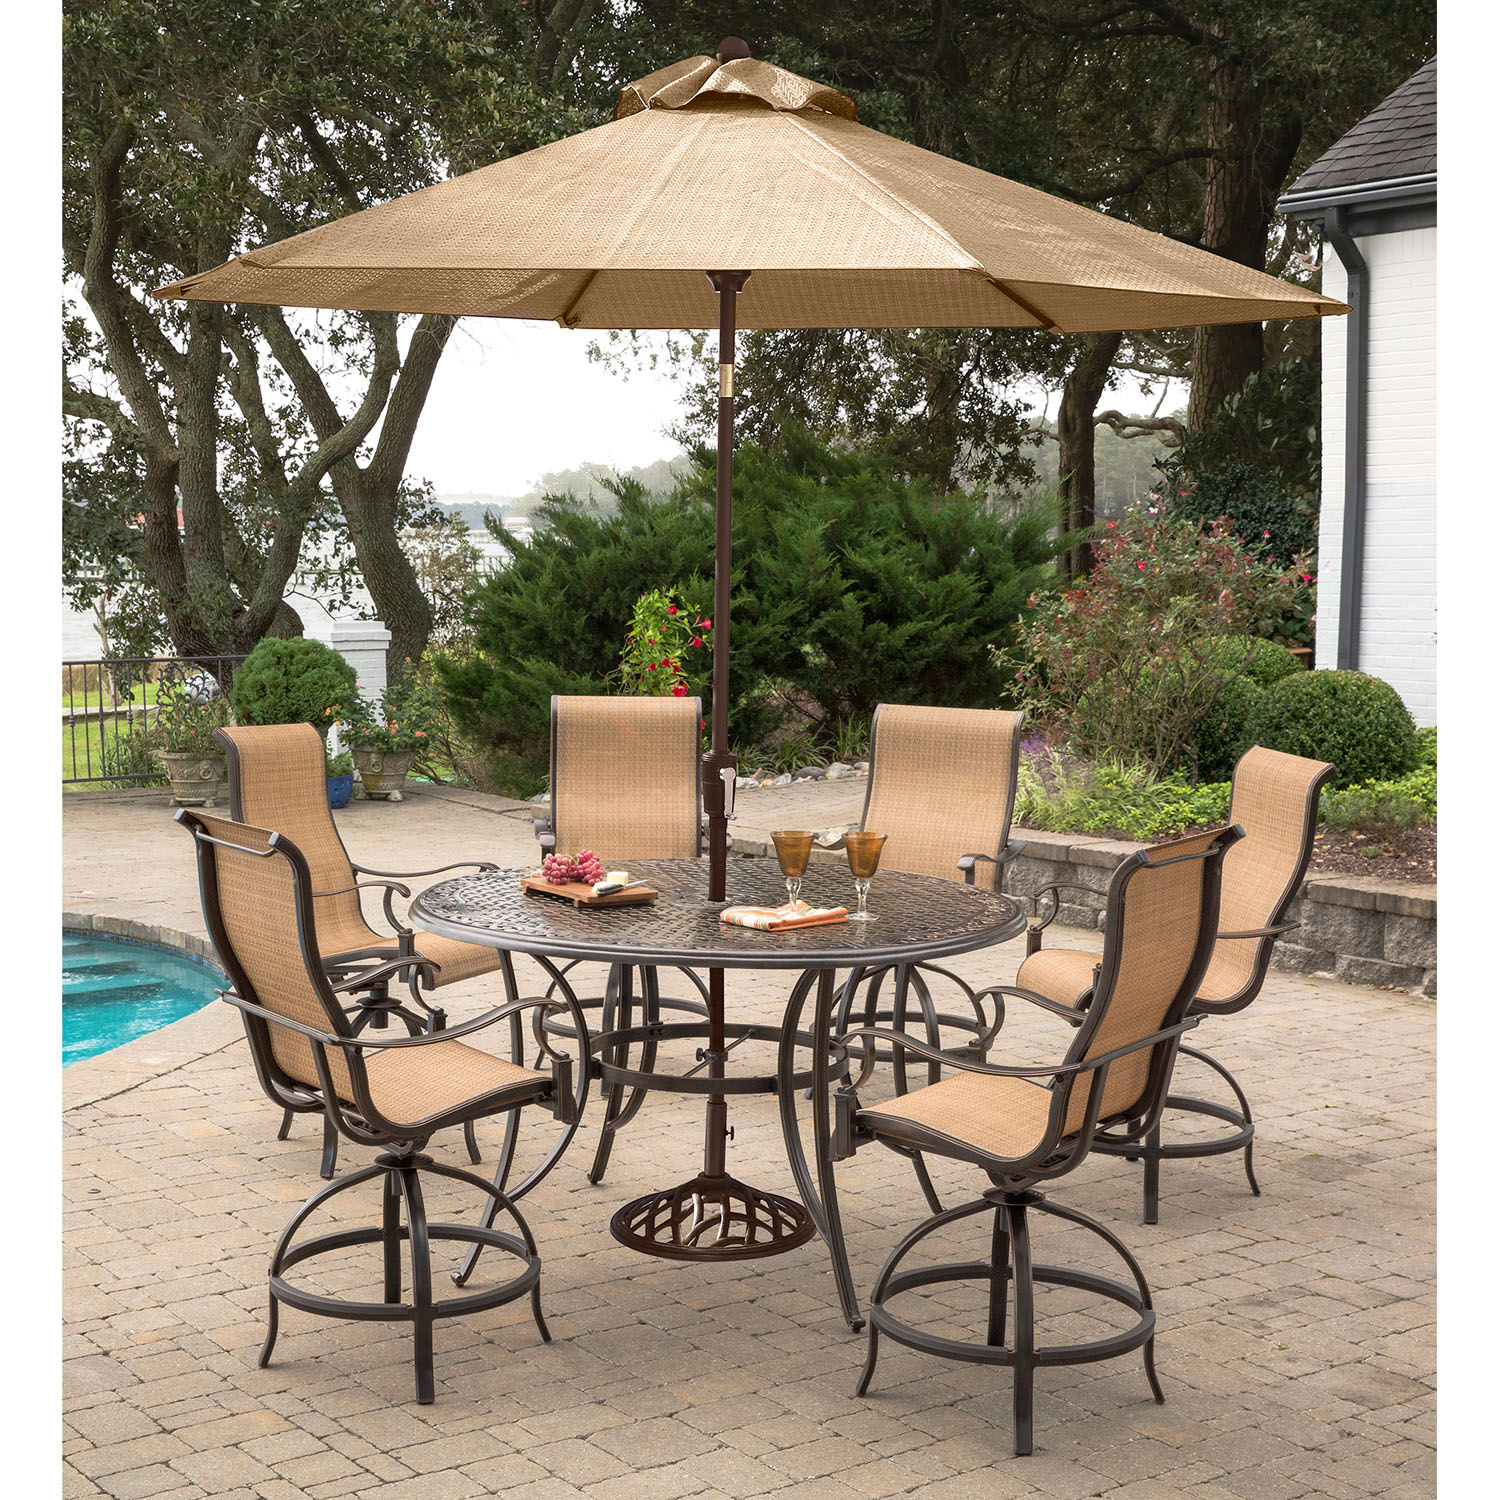 high top patio table and chairs yoga ball chair hanover manor 7 piece dining set with 6 contoured